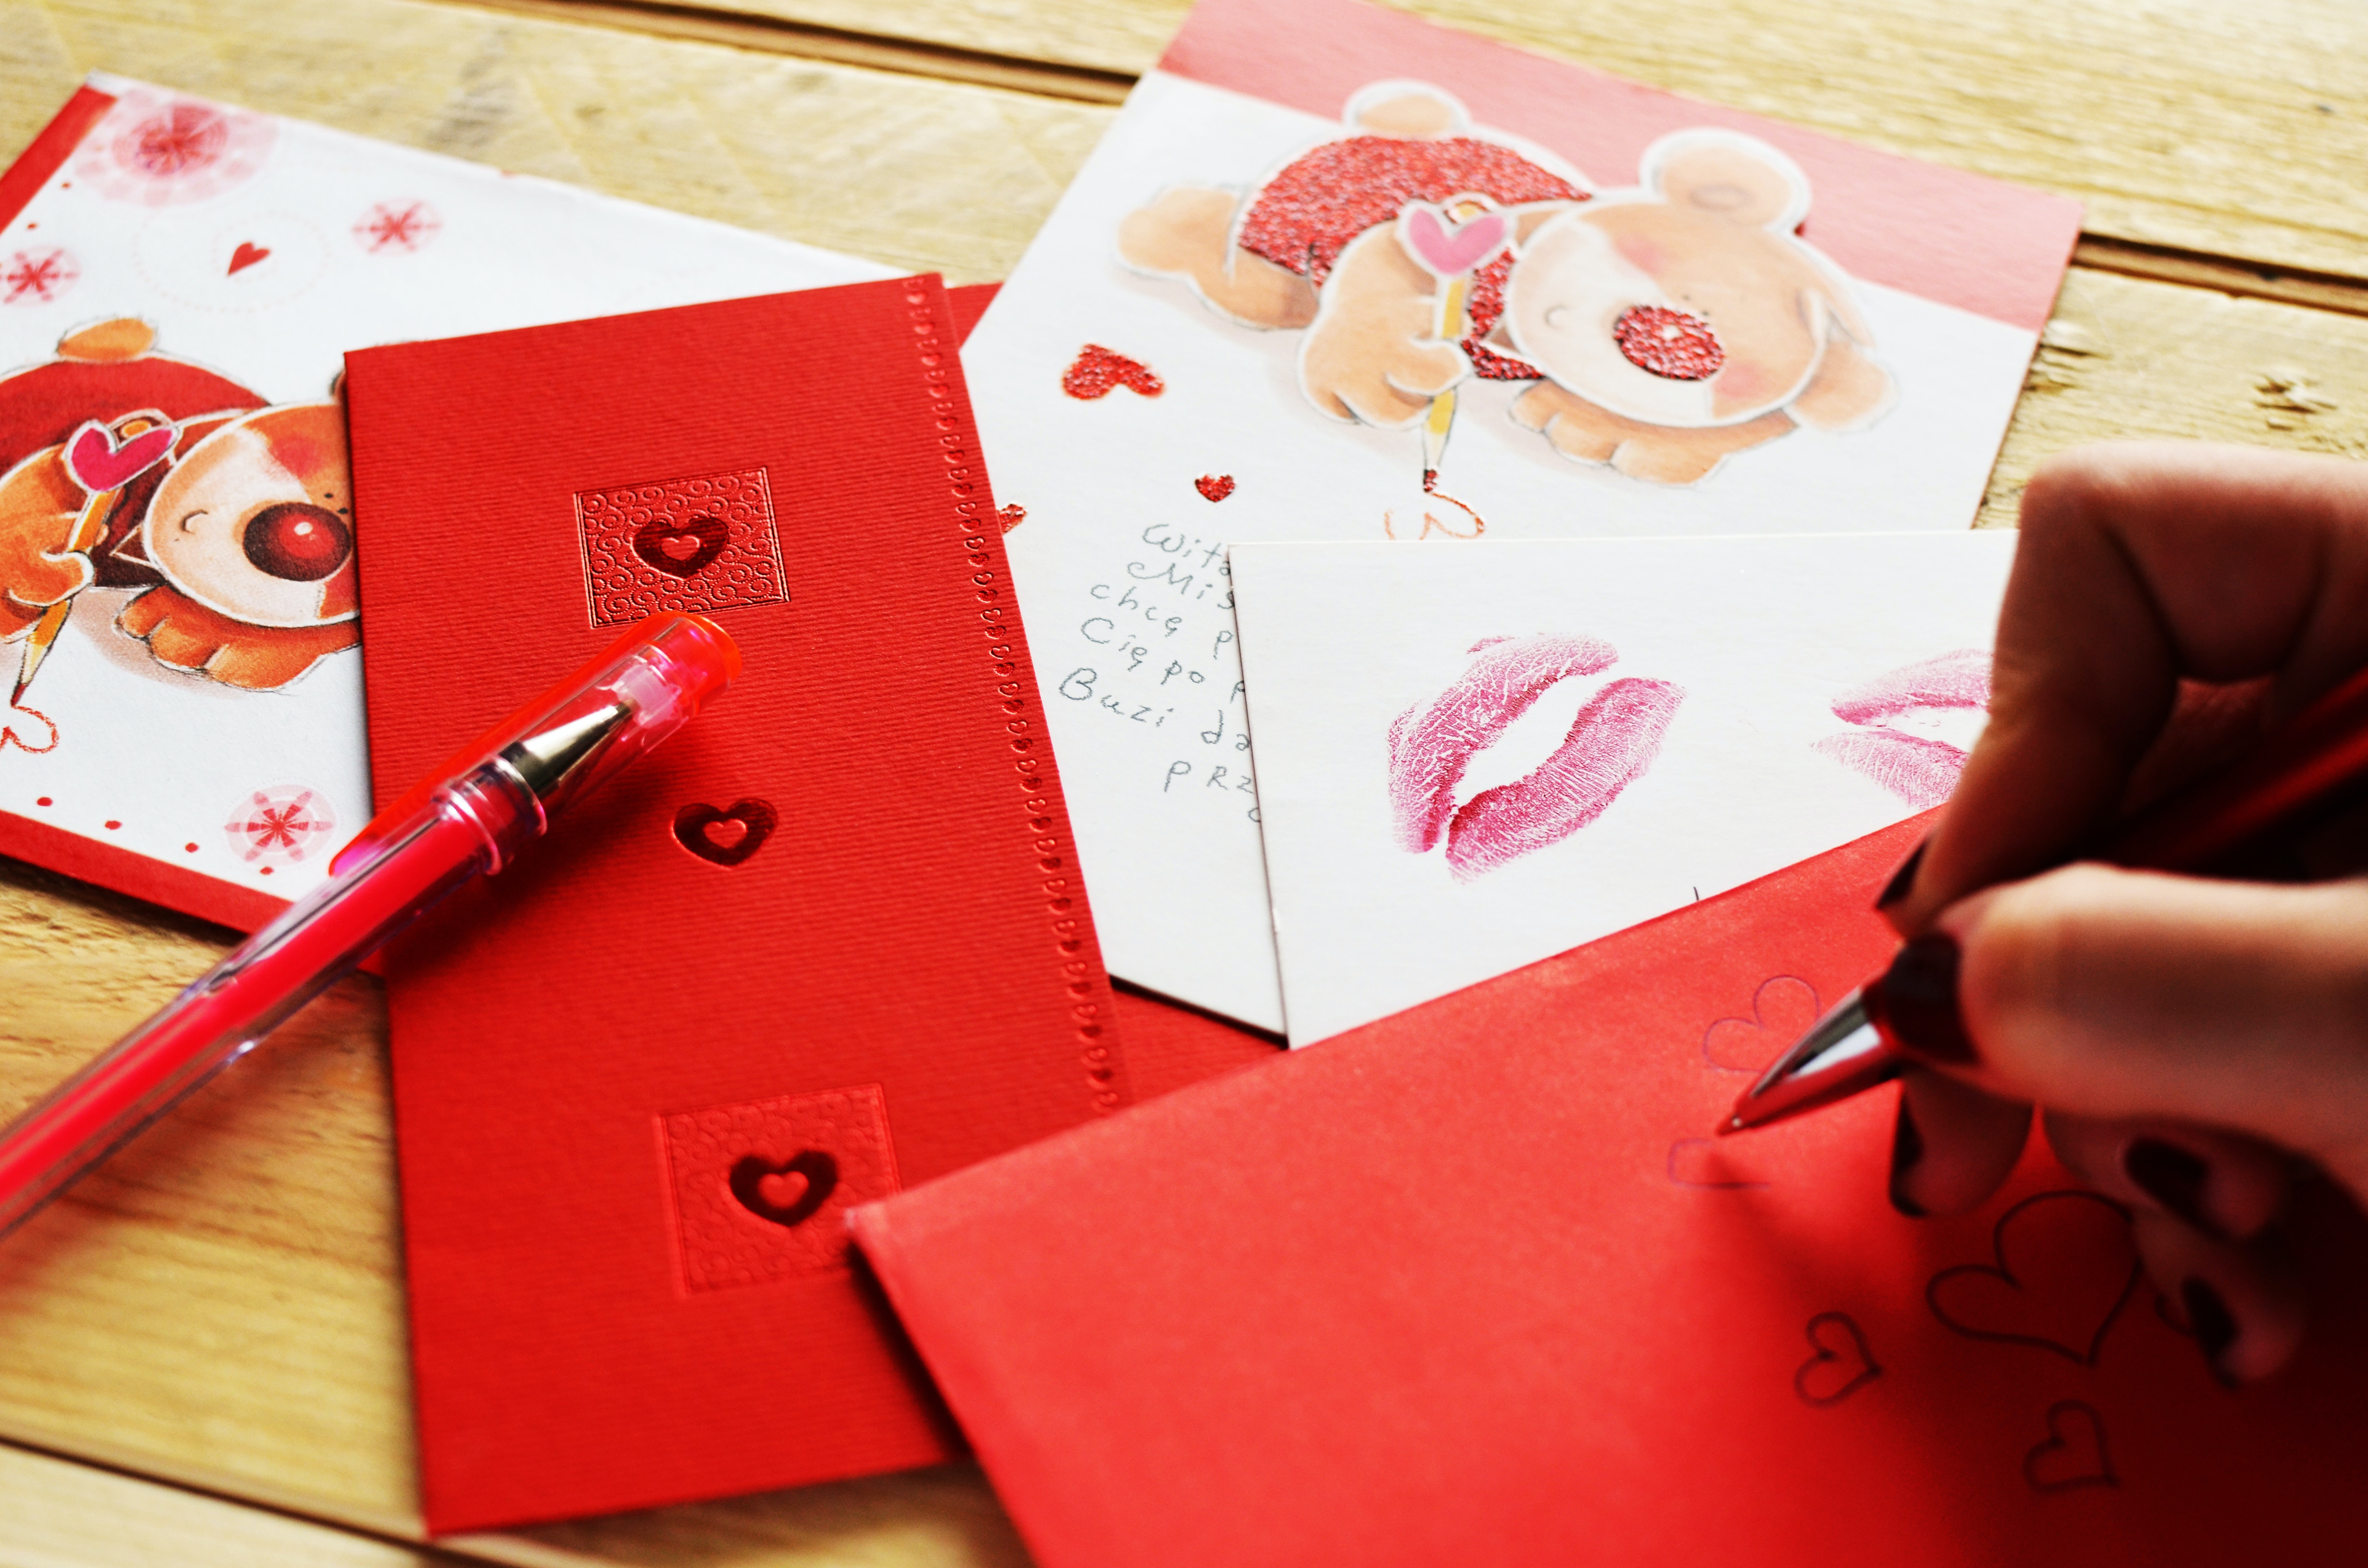 Free stock photo of christmas gift handwriting free download negle Image collections